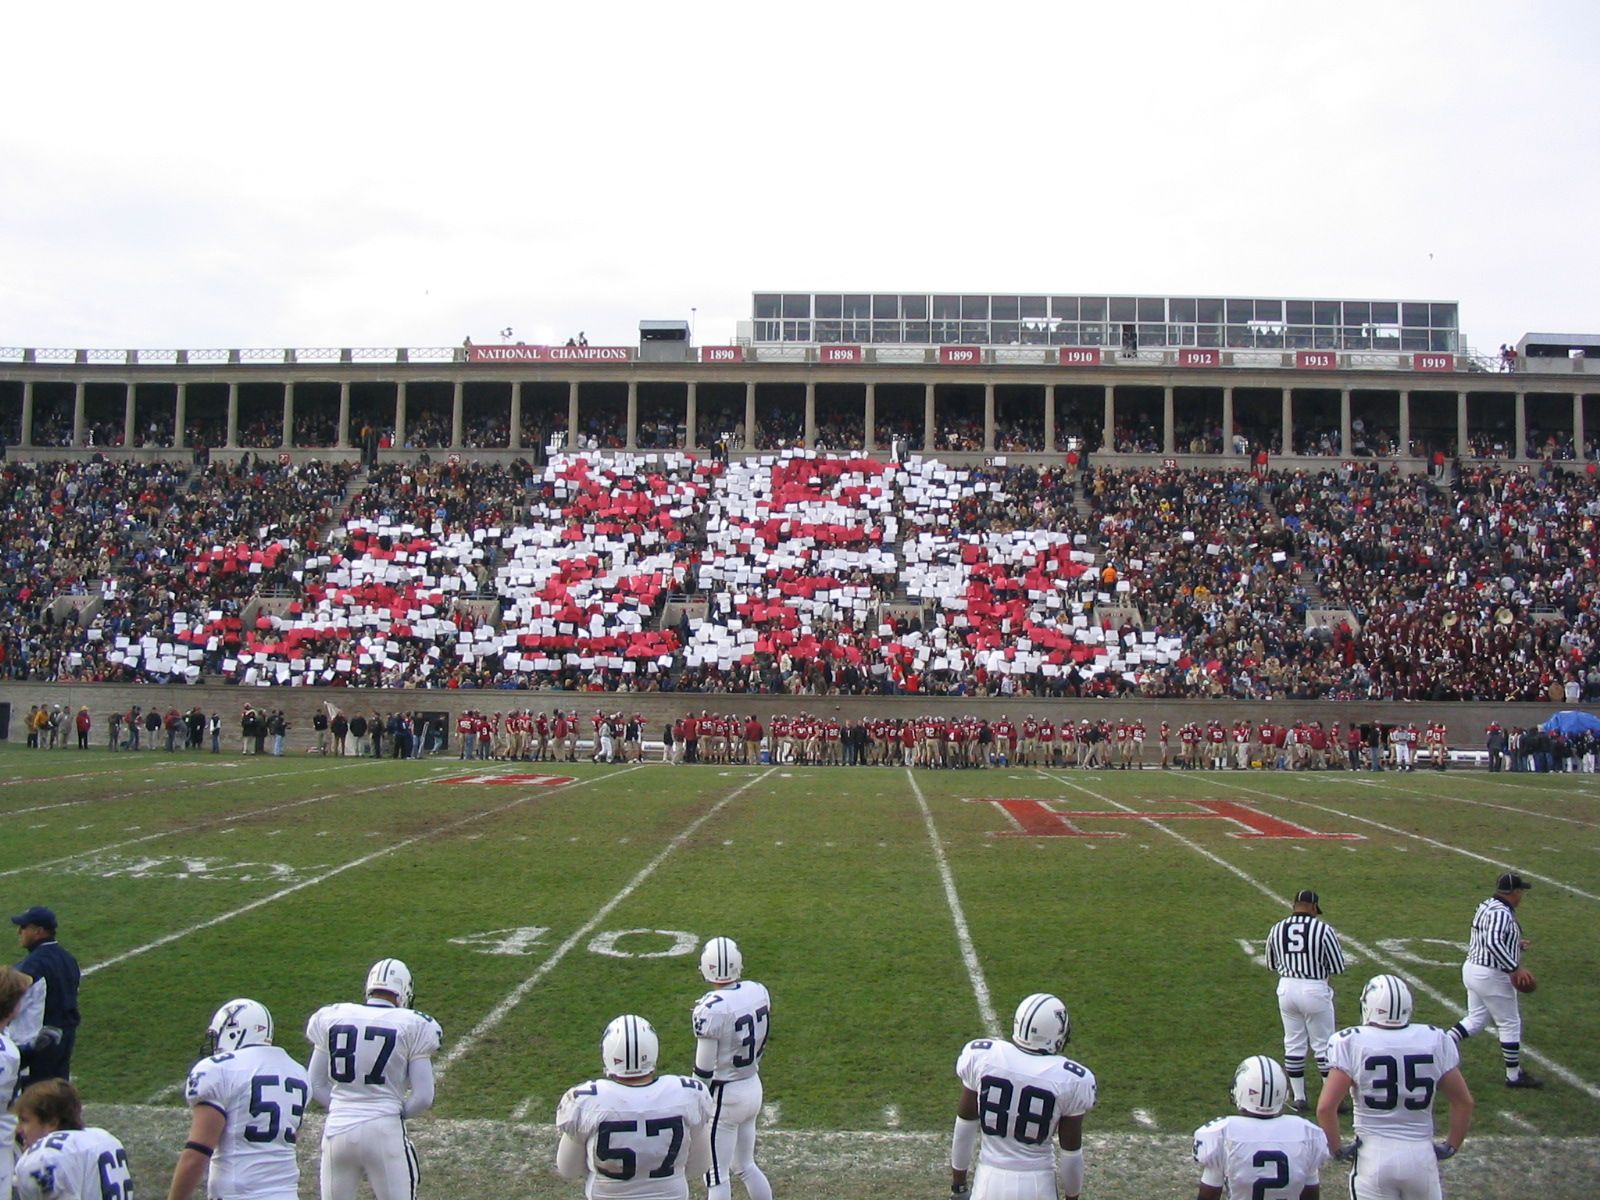 Best rivalry pranks in college football history